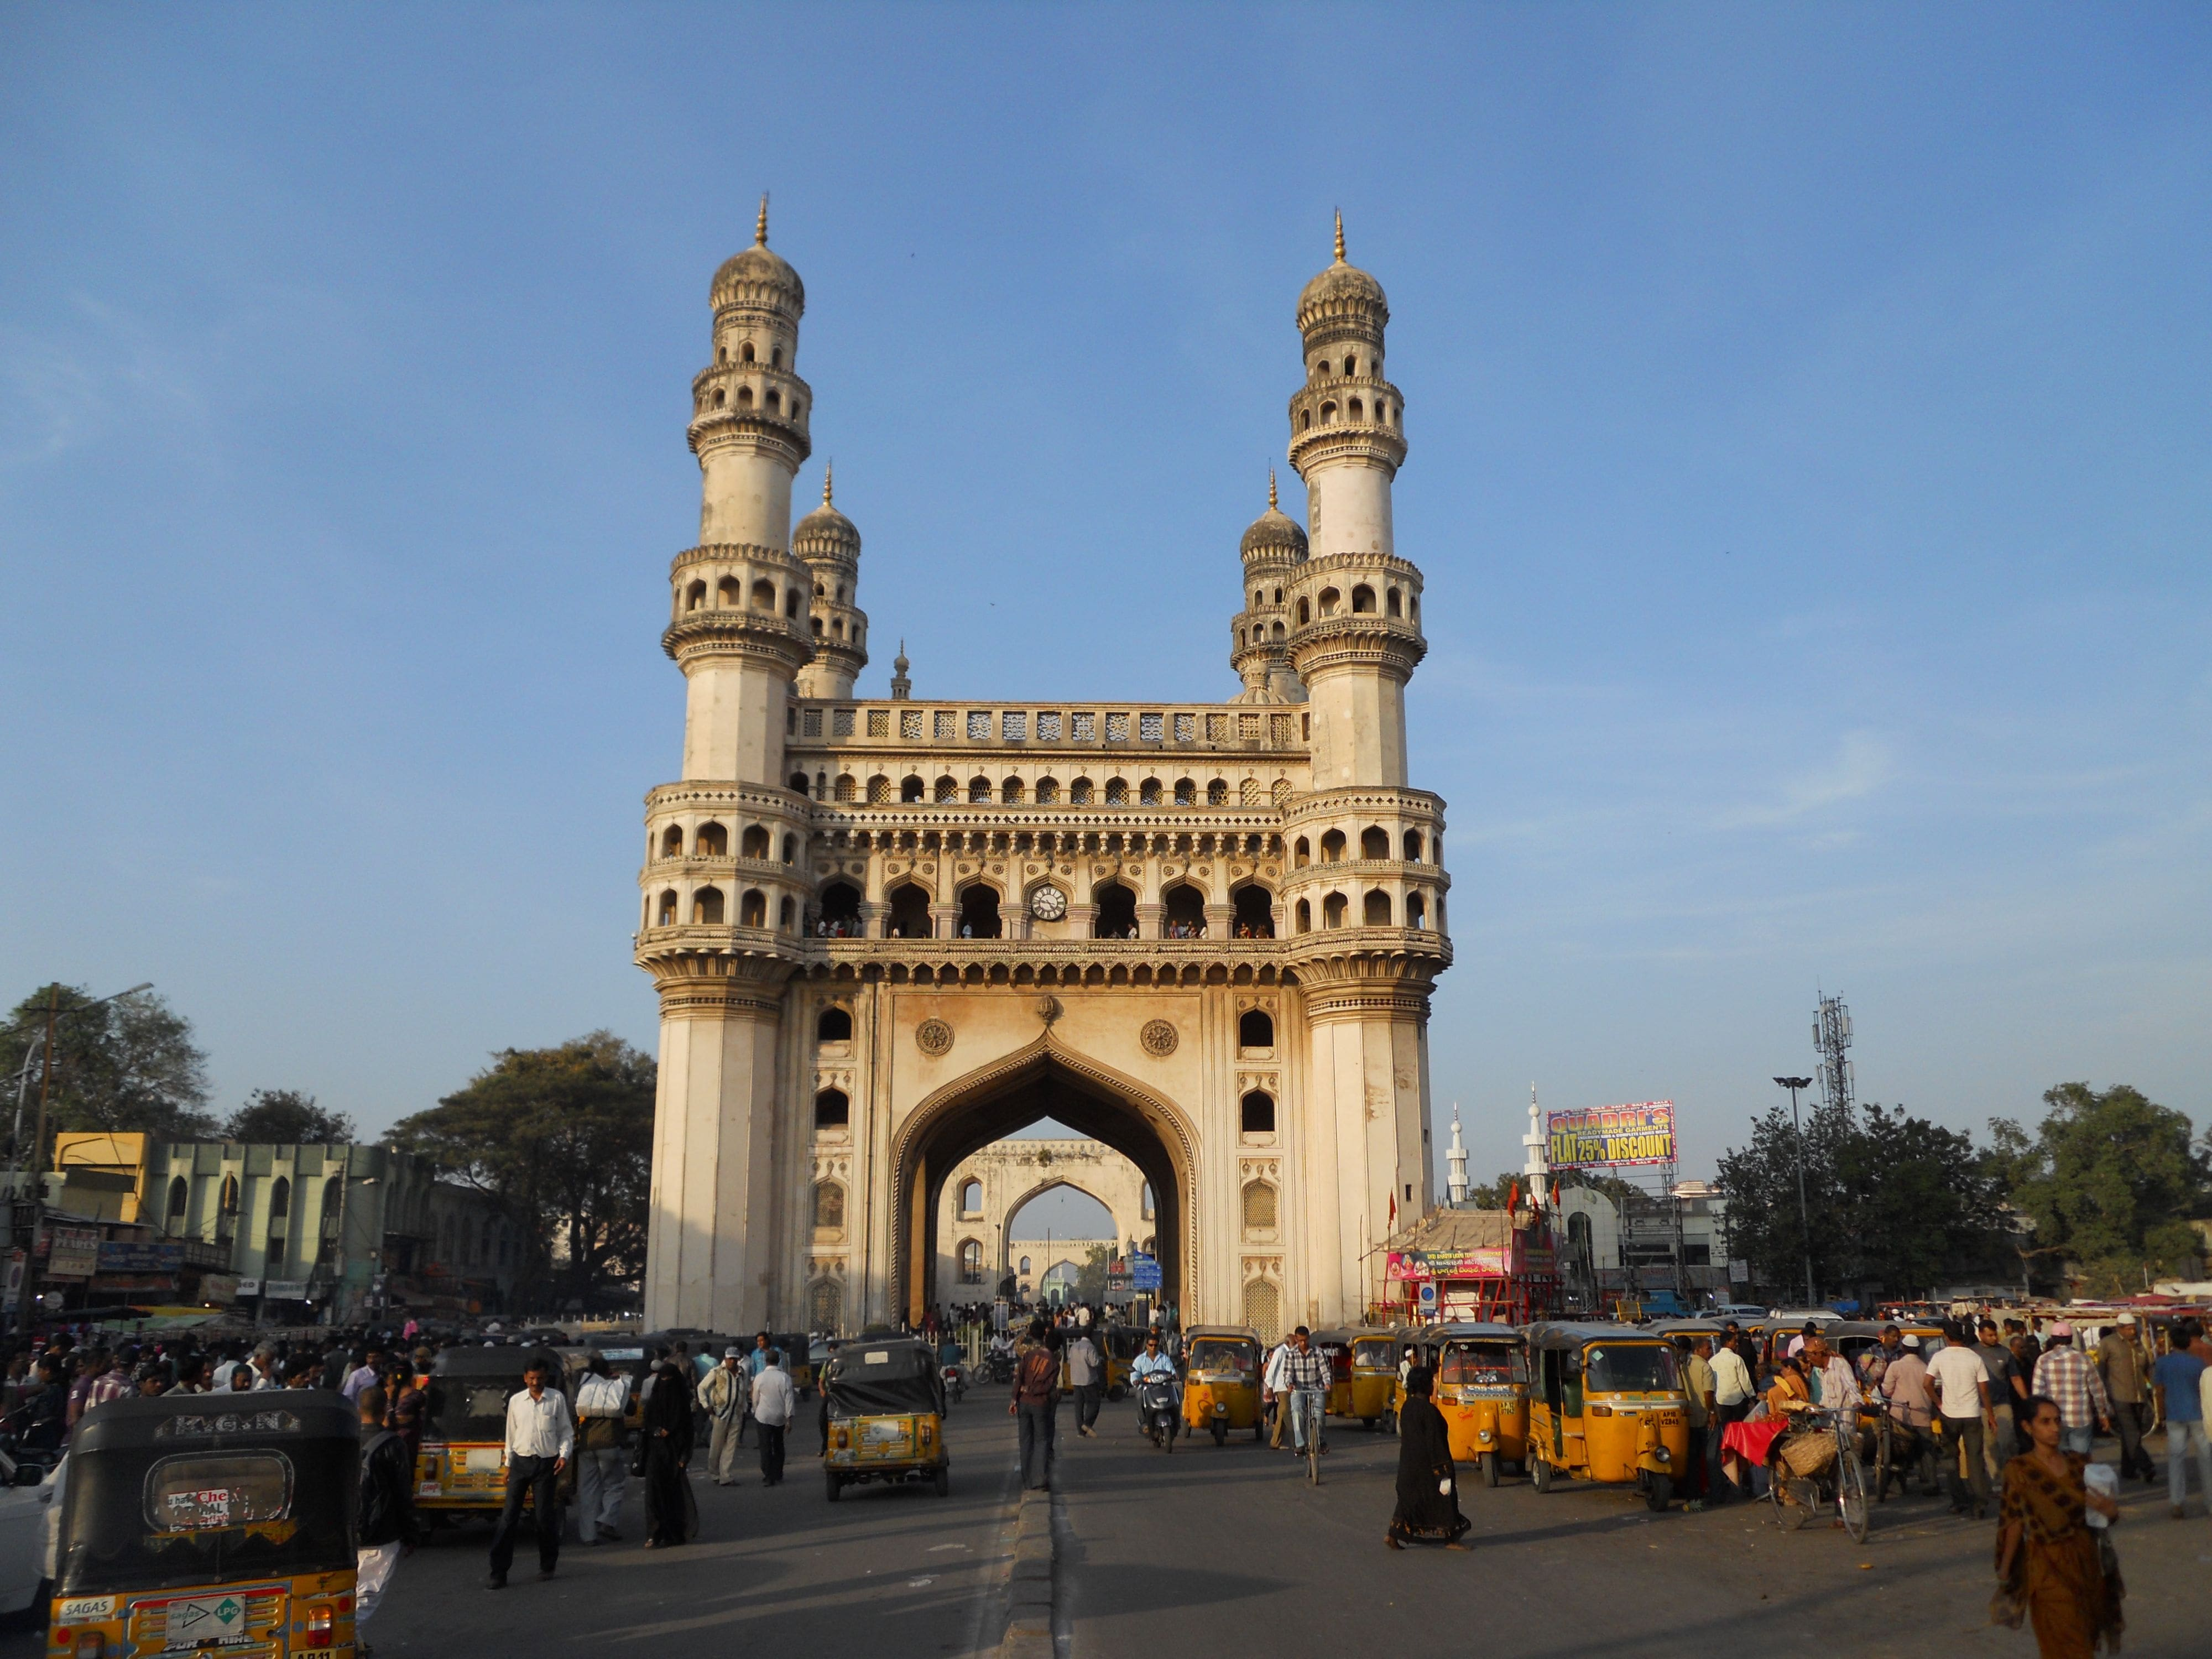 Hyderabad Lockdown: Amid Rumours of Complete Lockdown, Charminar, Golconda to Re-open From July 6